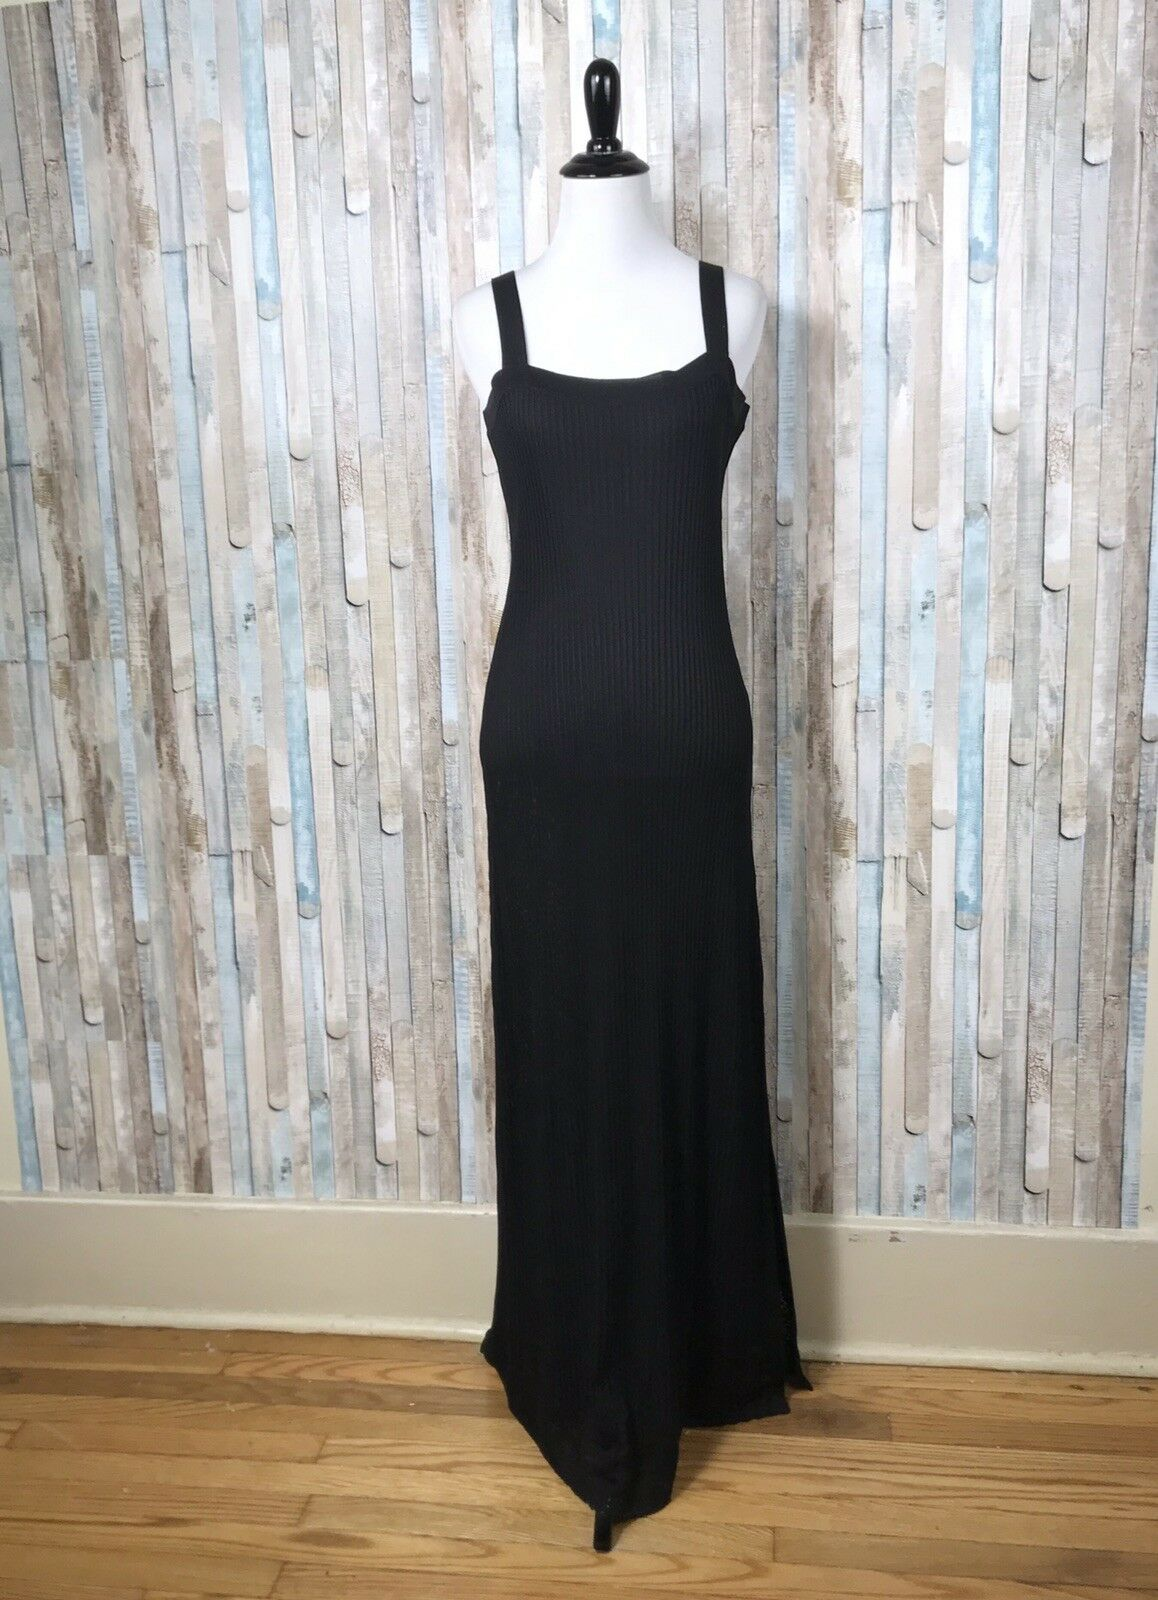 Exclusively Misook M schwarz Ribbed Rib Lace Acrylic Knit Fitted Maxi Dress